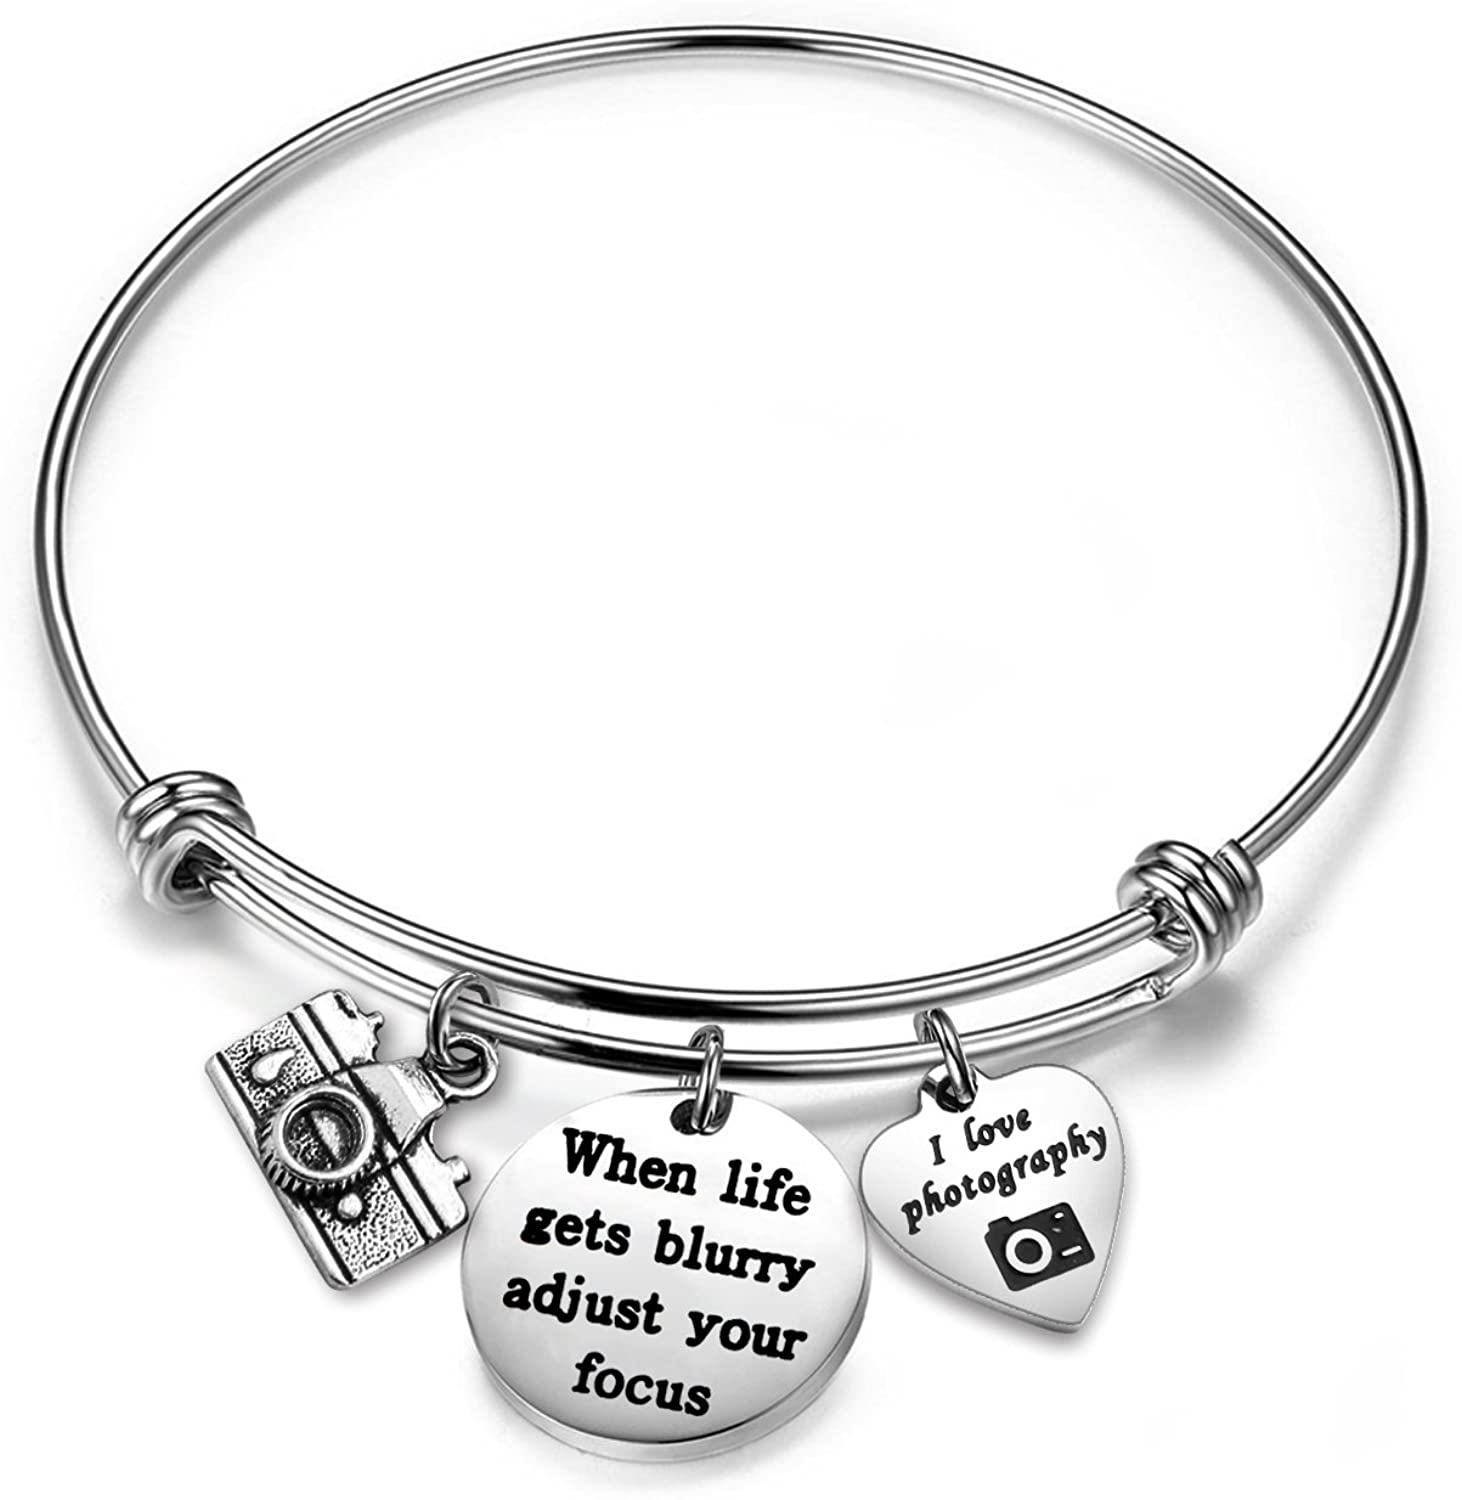 Gzrlyf Photographer Bracelet Camera Charm Bracelet When Life Gets Blurry Adjust Your Focus Jewelry Photographer Gift